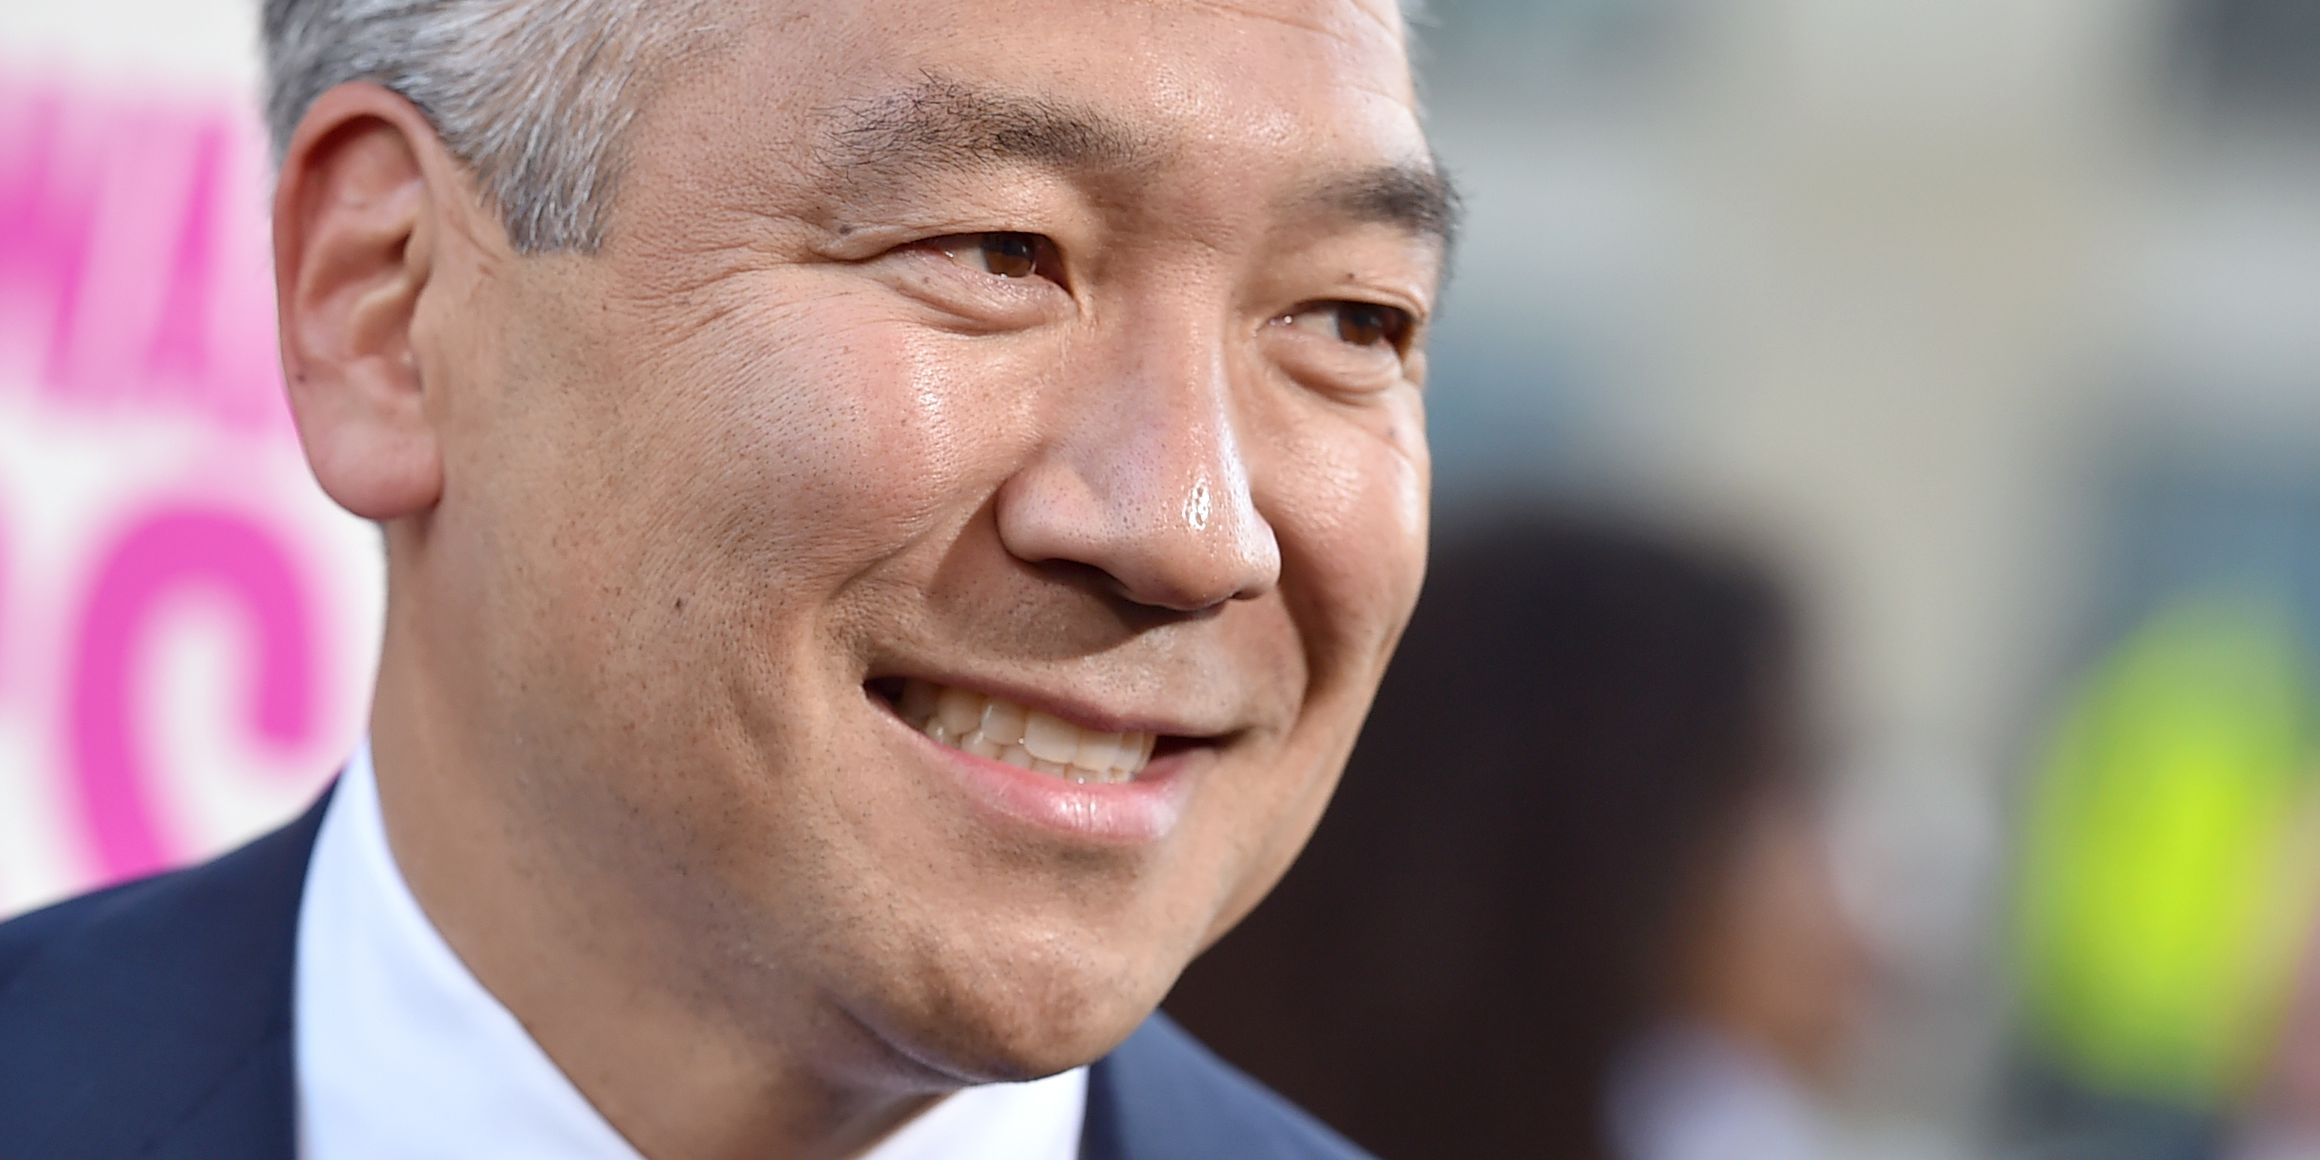 Warner Bros. CEO Tsujihara steps down following allegations of sex scandal